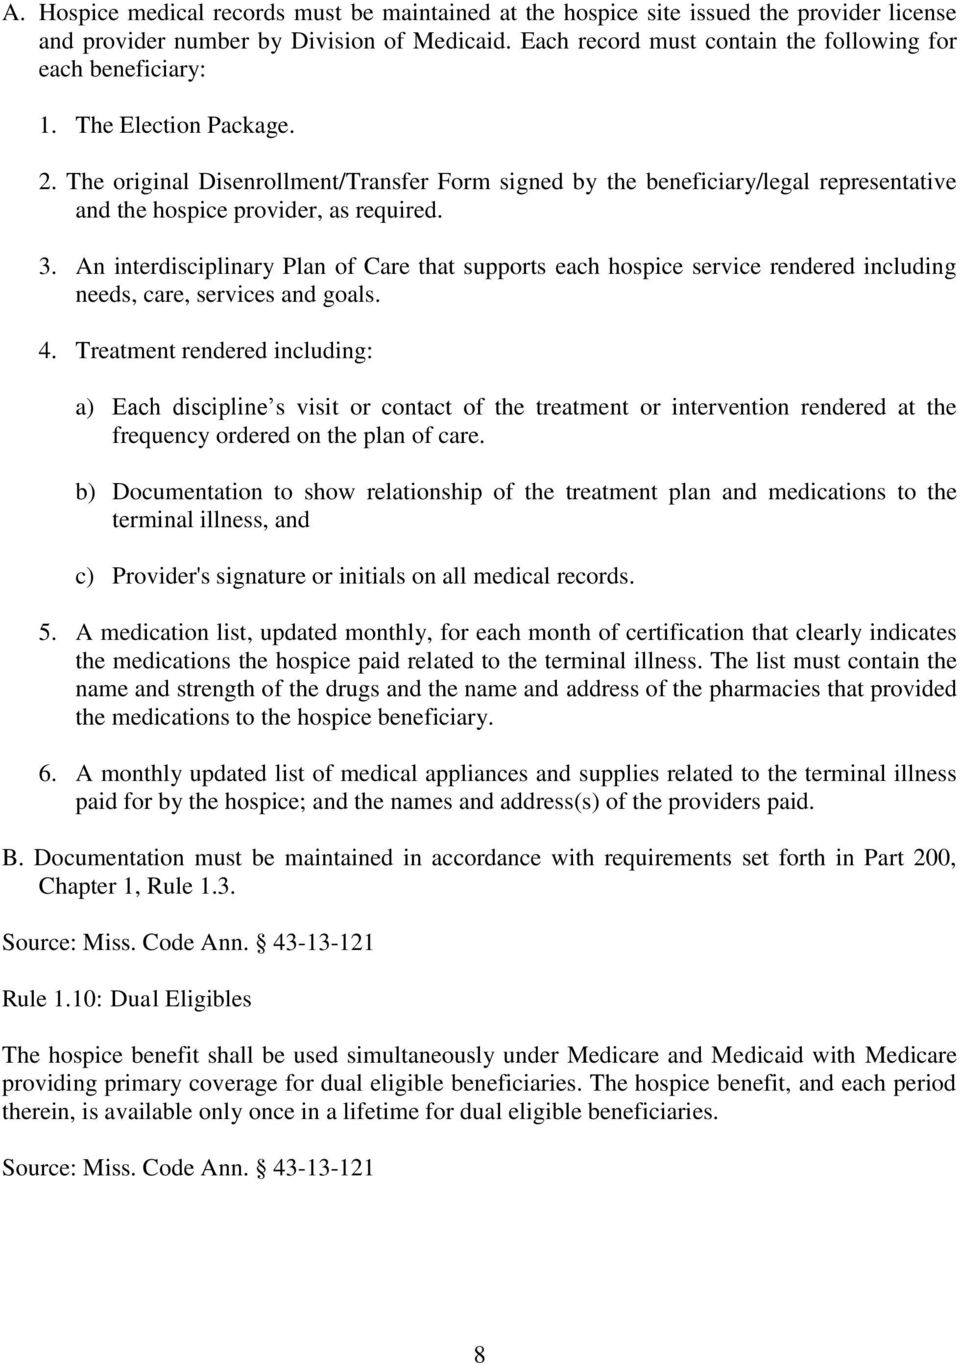 The original Disenrollment/Transfer Form signed by the beneficiary/legal representative and the hospice provider, as required. 3.